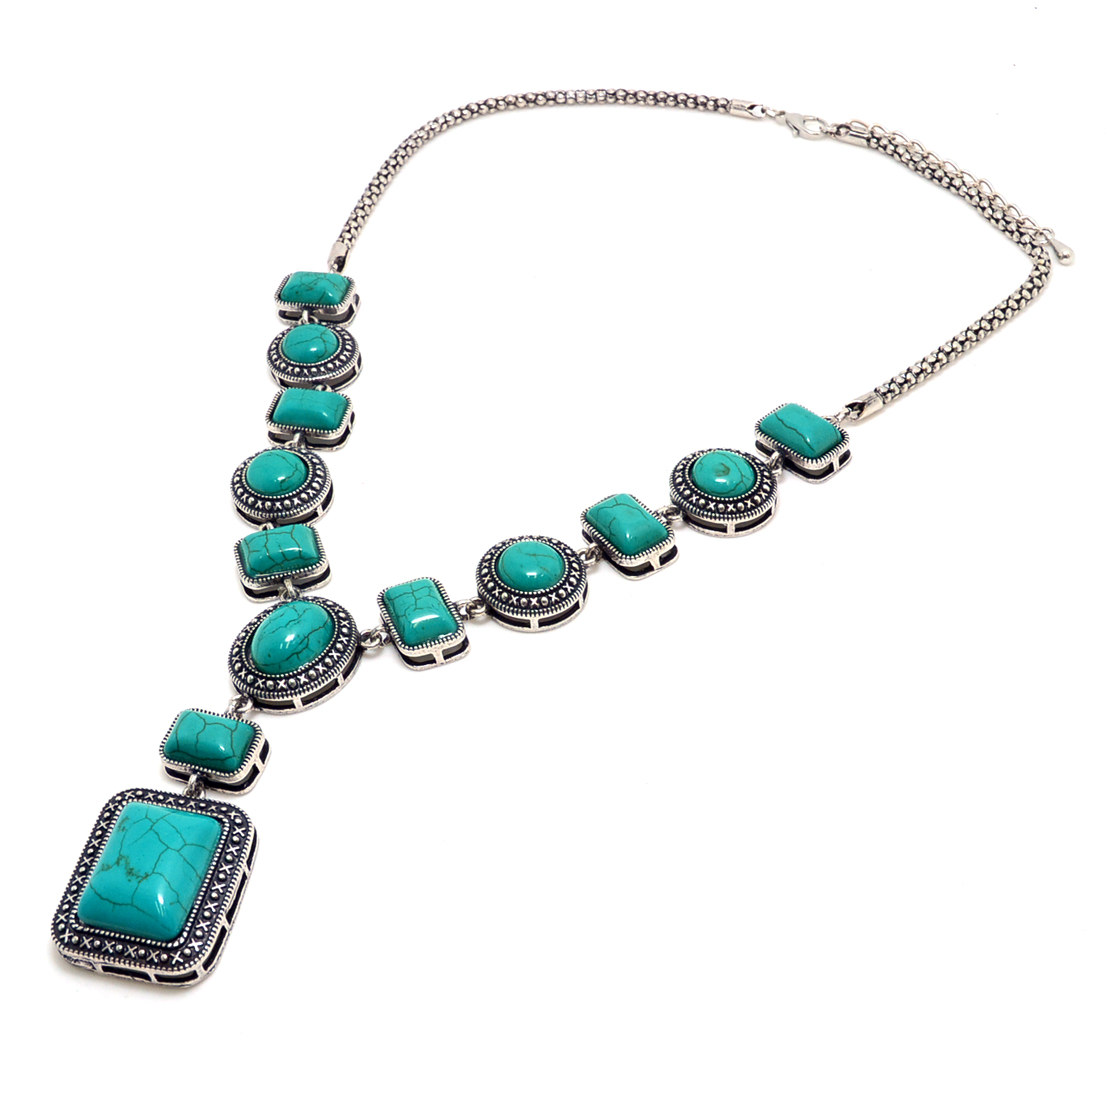 Antique Turquoise Stone Pendants with Silver-Tone Chain